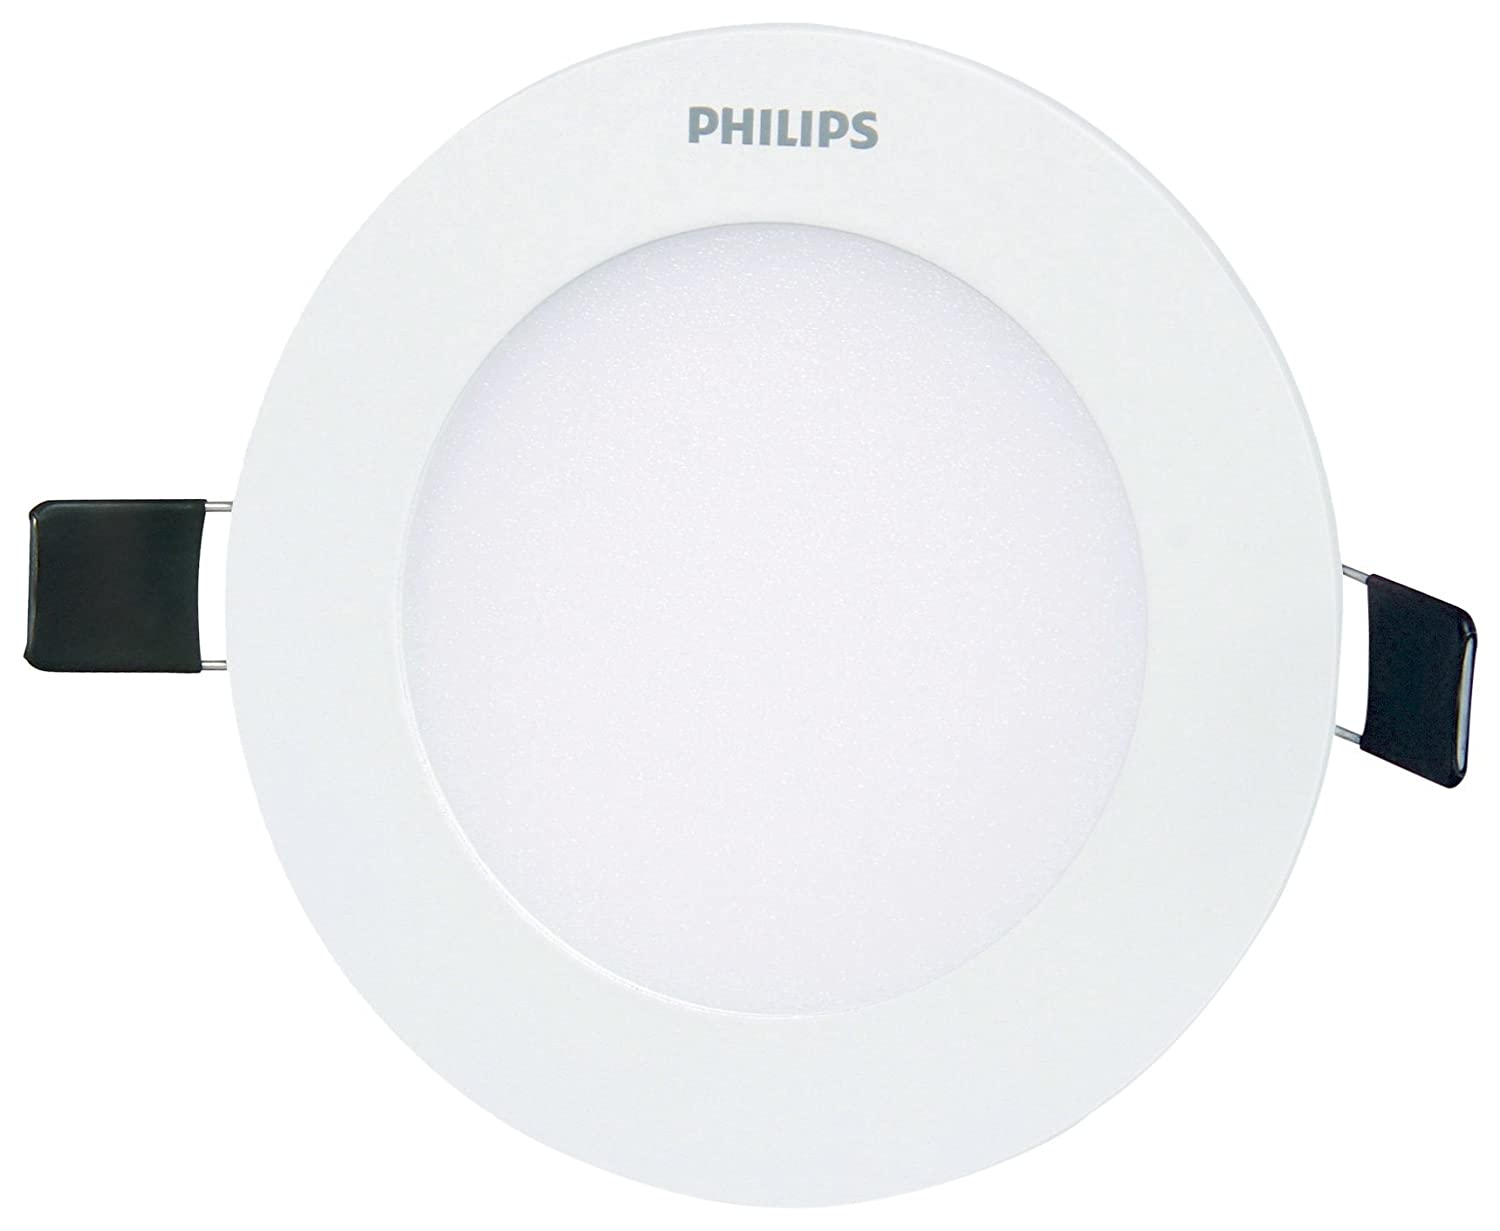 Philips ultra slim plus 7 watt recessed led panel cool day light philips ultra slim plus 7 watt recessed led panel cool day light round amazon home kitchen aloadofball Gallery